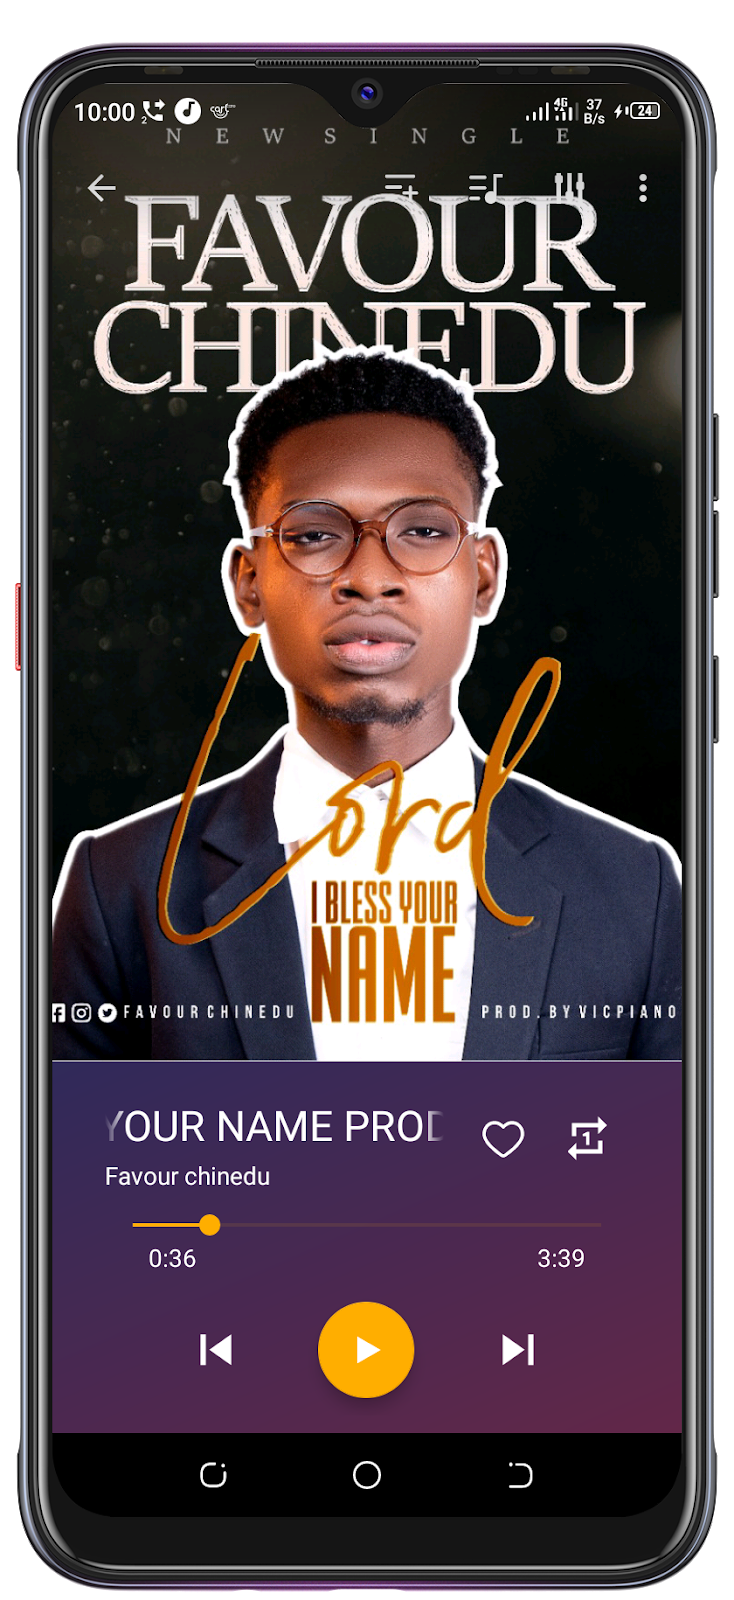 FAVOUR CHINEDU-LORD I BLESS YOUR NAME